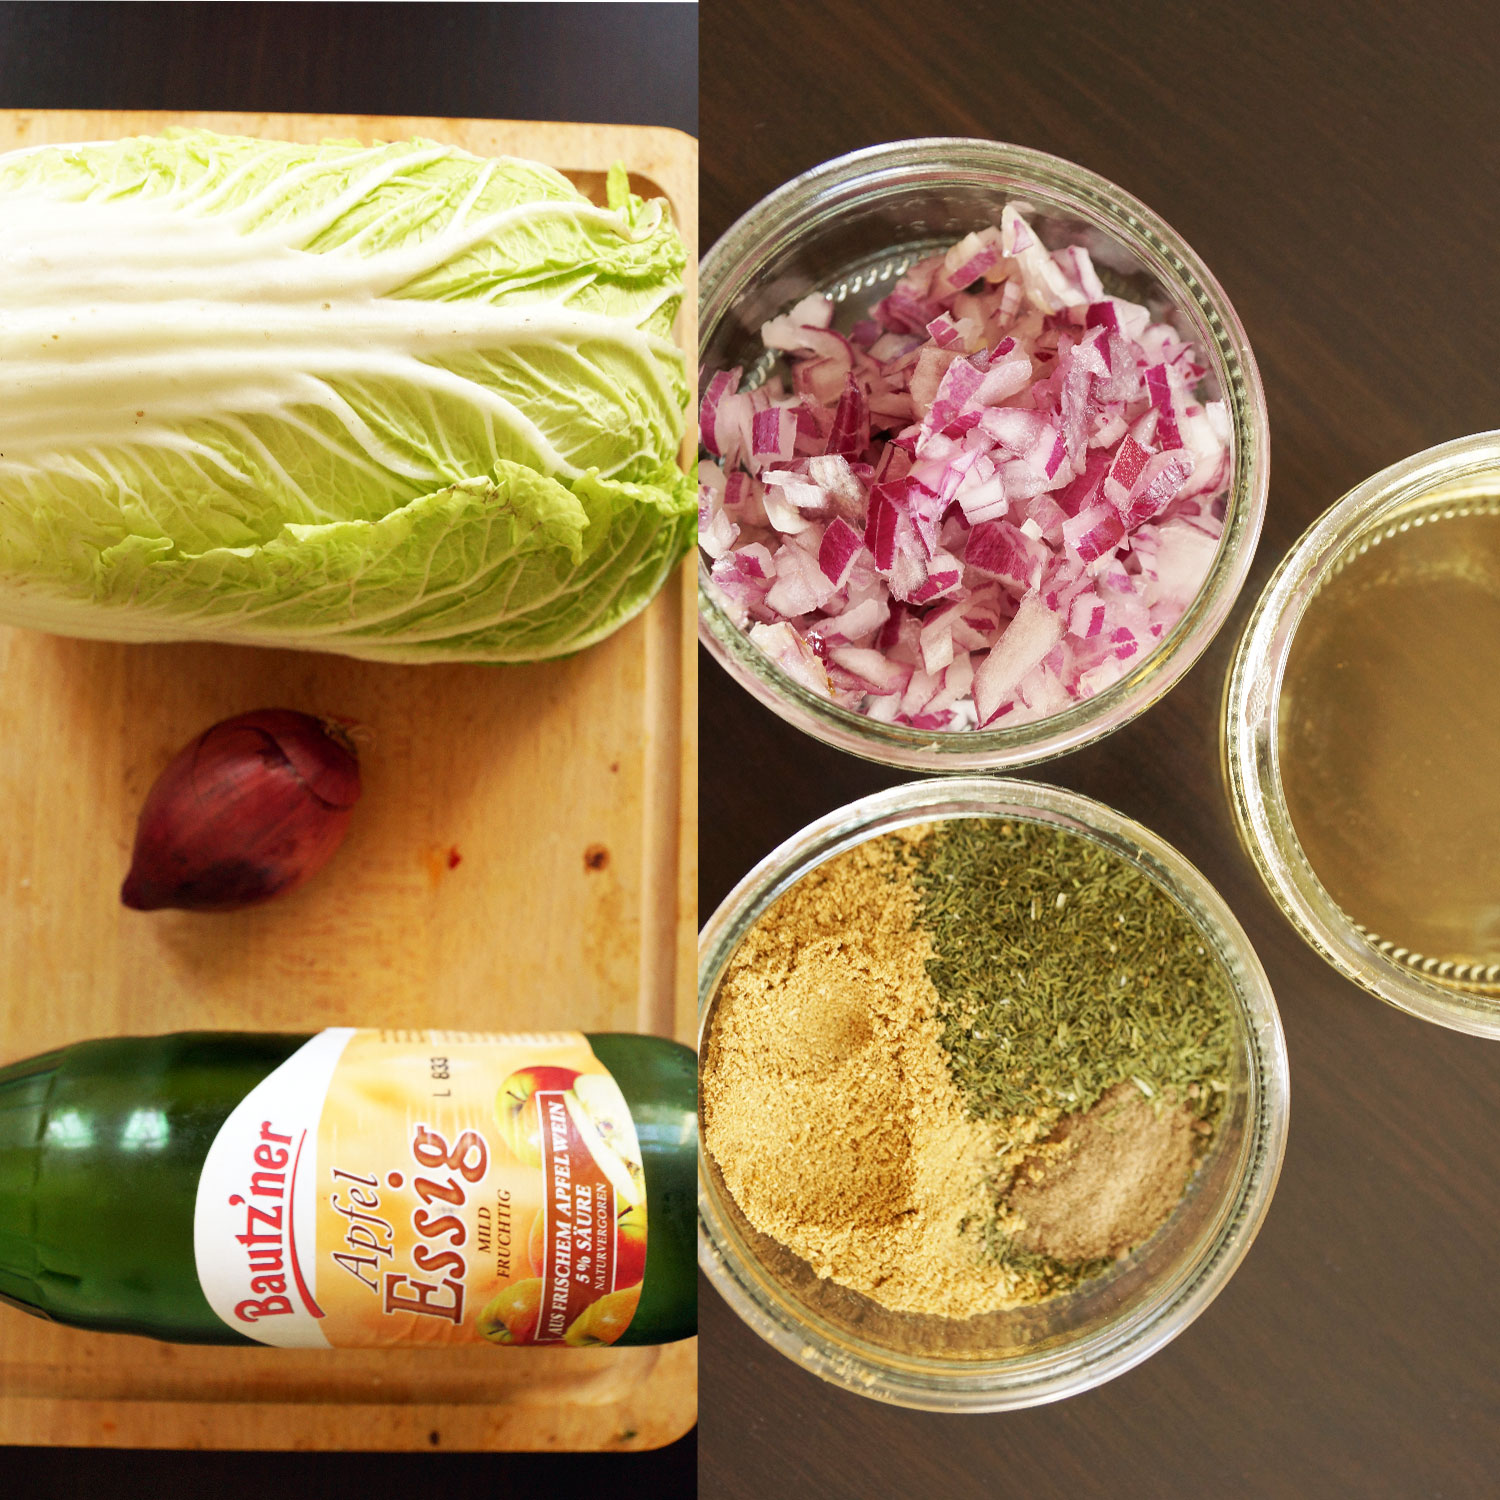 Chinese Cabbage and Dill Salad (super rich in Vitamin C)